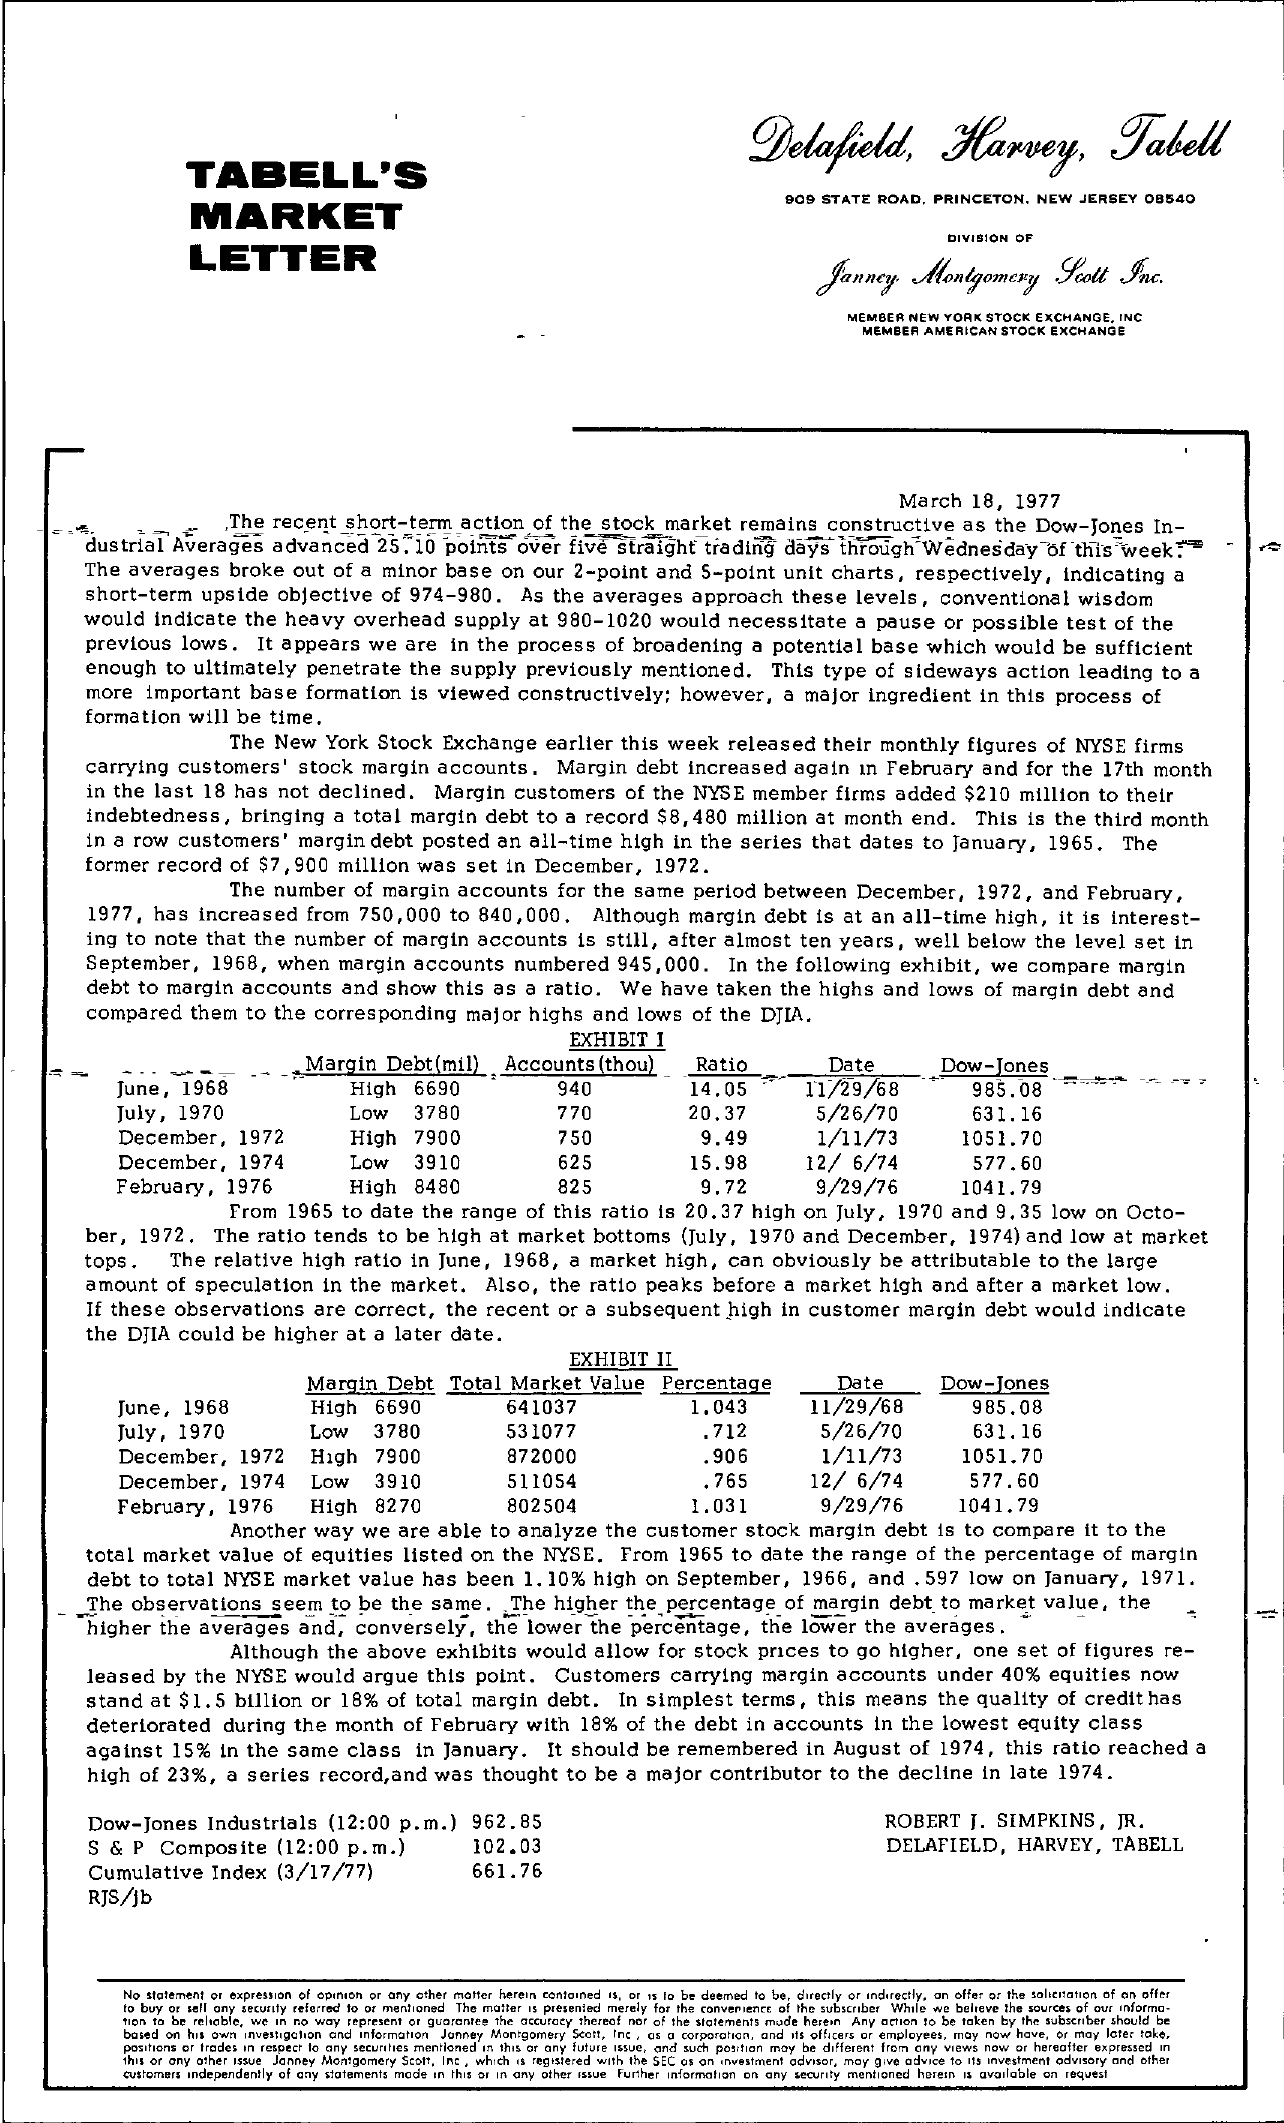 Tabell's Market Letter - March 18, 1977